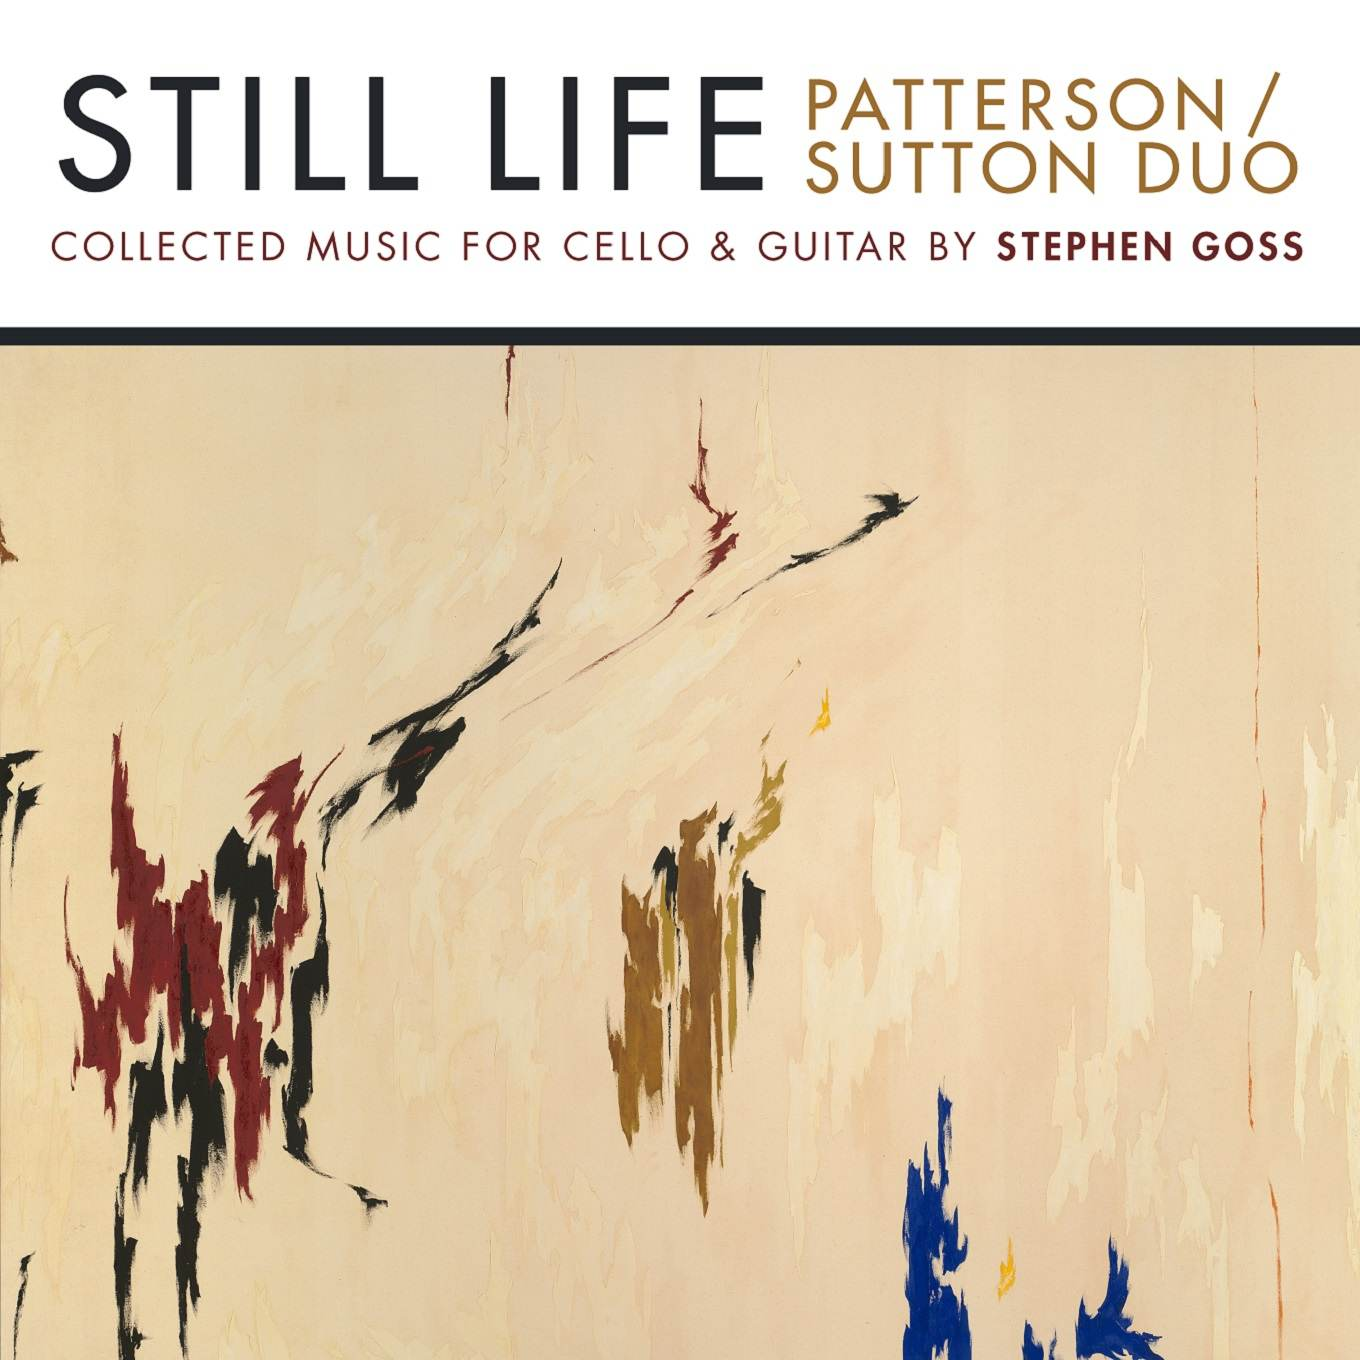 Still Life - Patterson/Sutton Duo - Album Cover